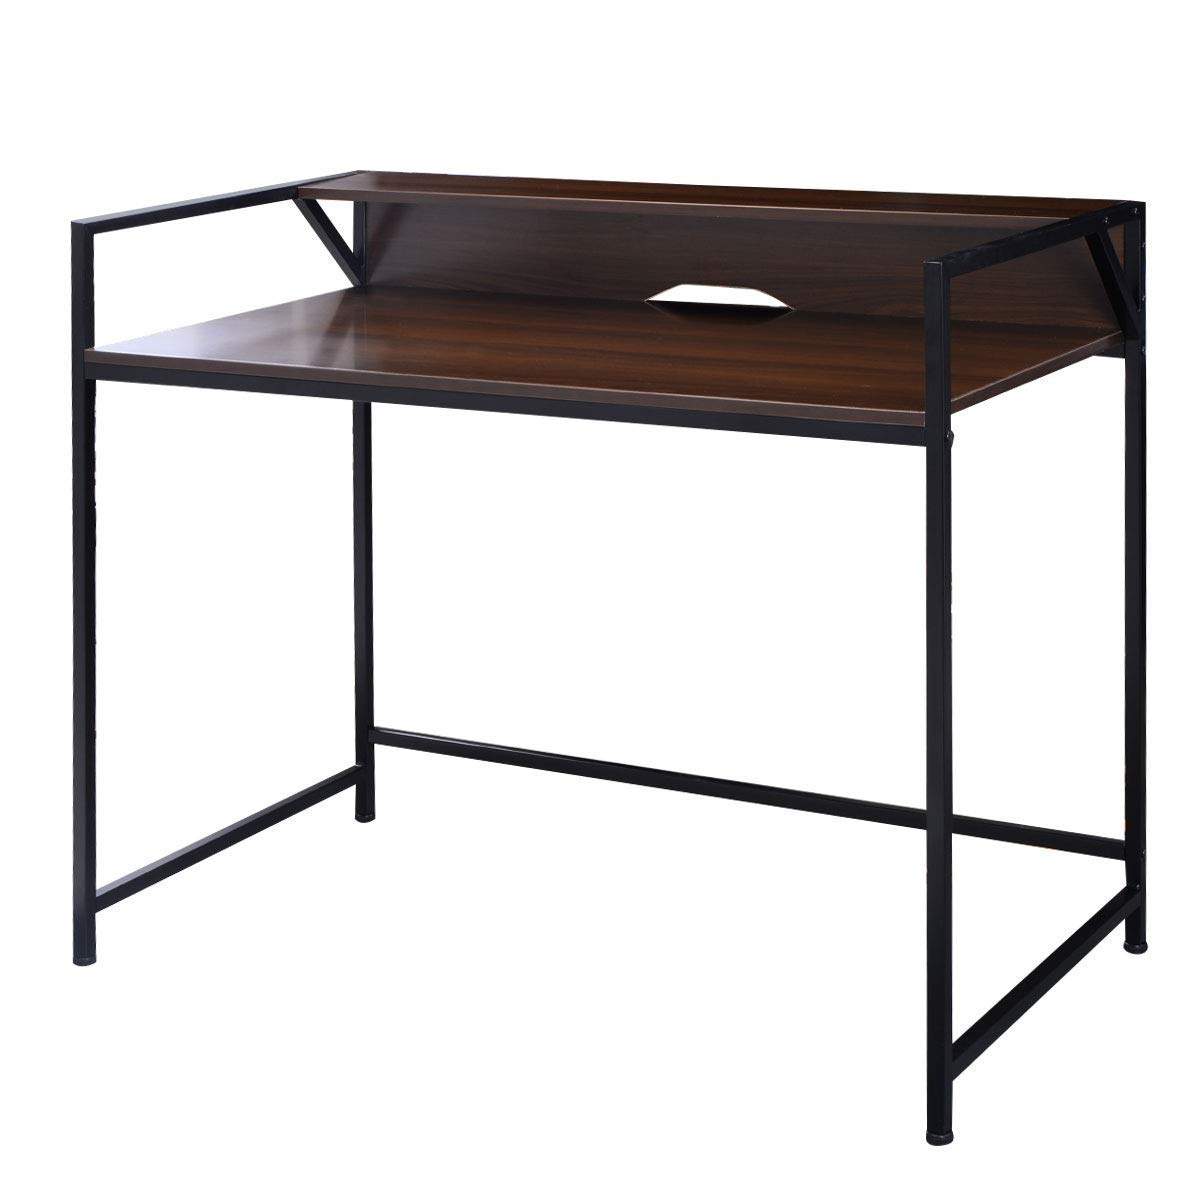 KING77777 Modern Simple and Unique Compact Design Simplistic Style Desk Computer Office Premium Quality Material Furniture by KING77777 (Image #1)